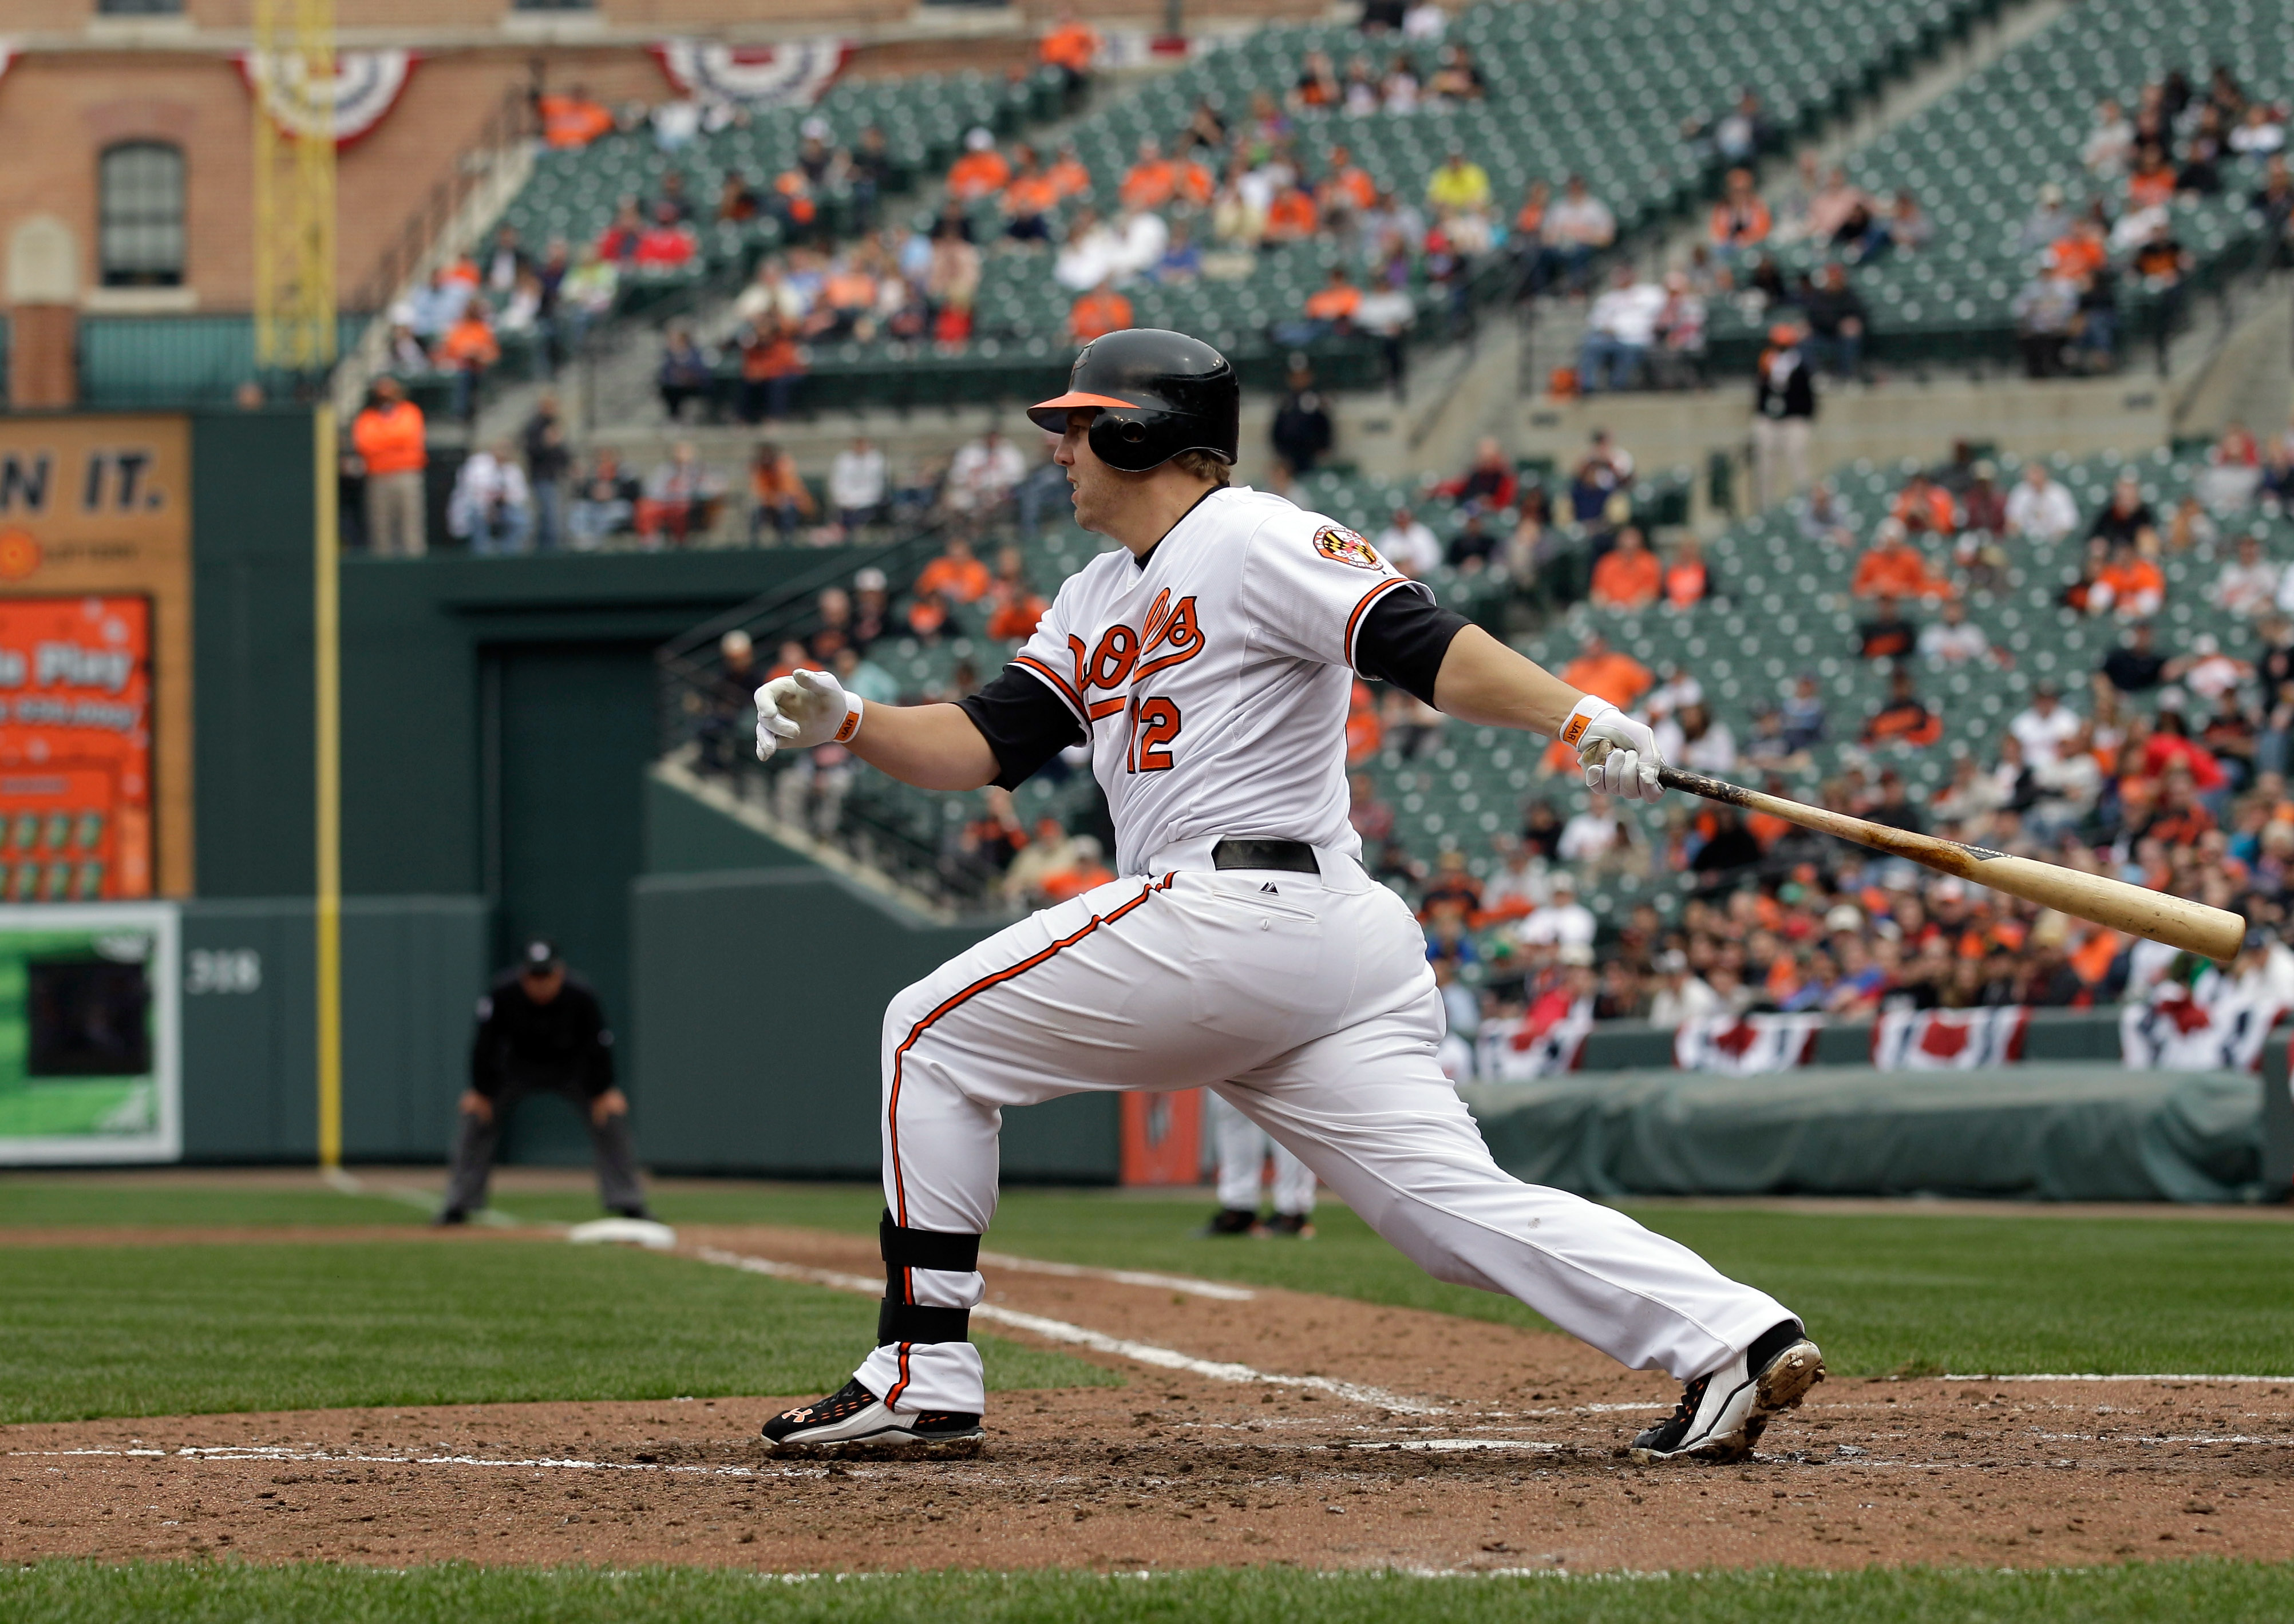 BALTIMORE, MD - APRIL 10: Mark Reynolds #12 of the Baltimore Orioles at the plate against the Texas Rangers at Oriole Park at Camden Yards on April 10, 2011 in Baltimore, Maryland.  (Photo by Rob Carr/Getty Images)